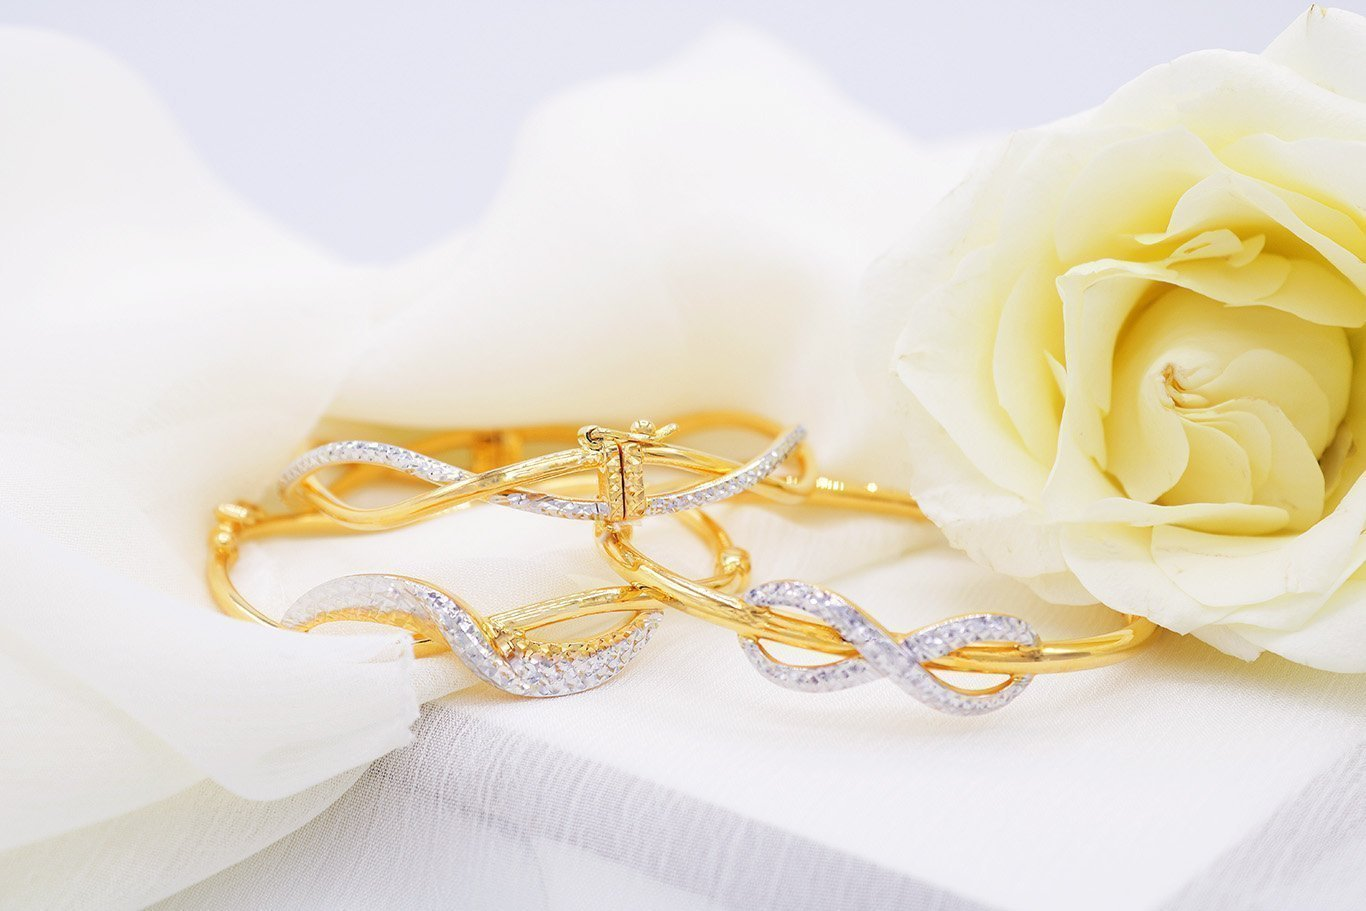 916 Gold Bangles from Orient Jewellers Singapore